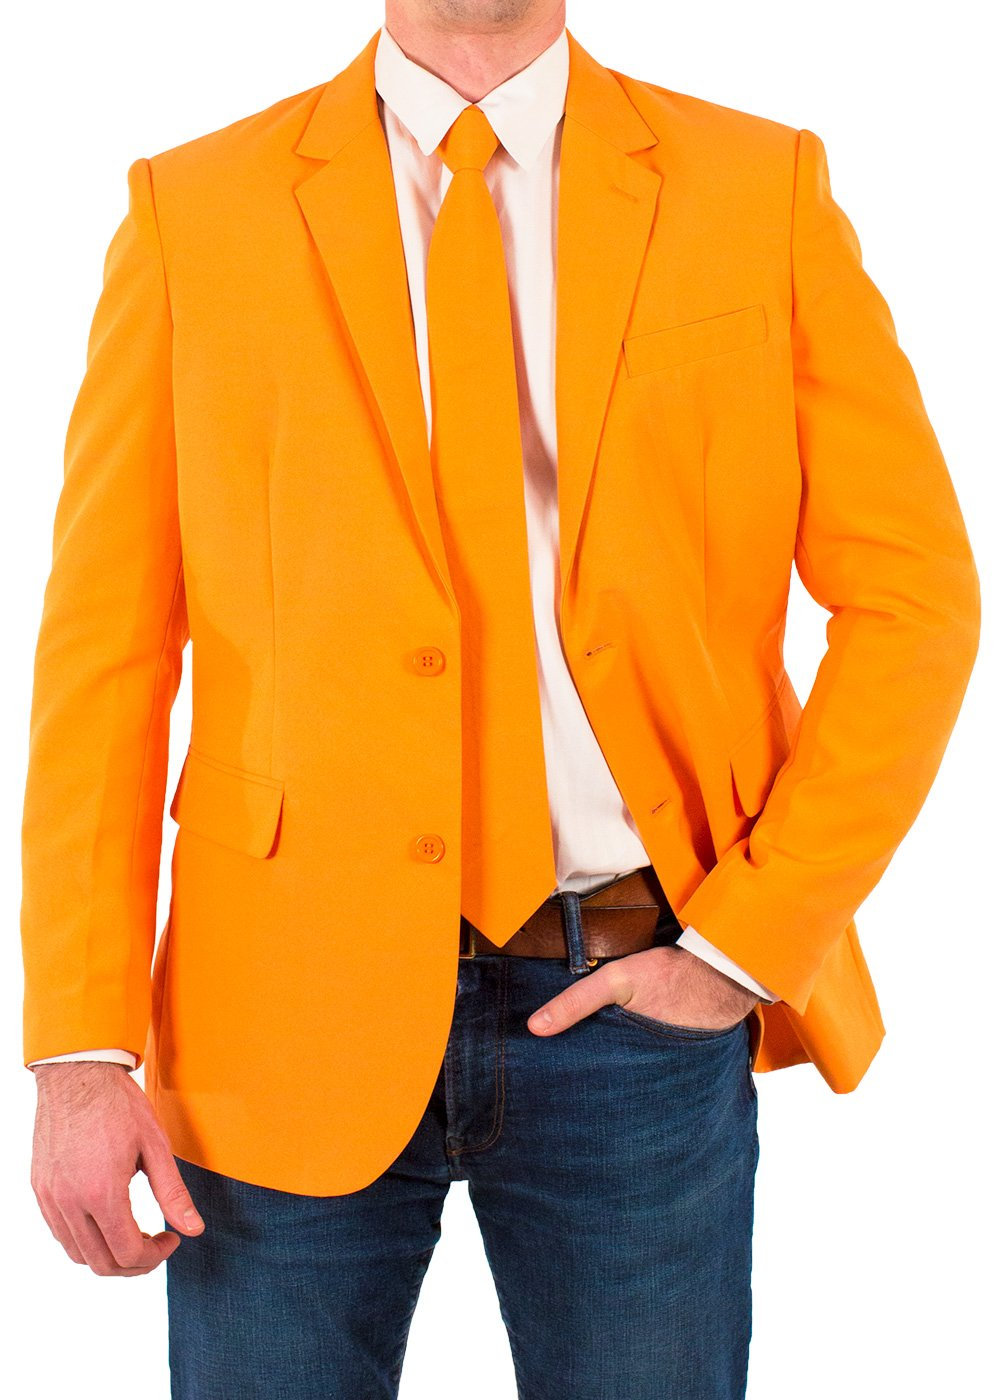 Festified Men's Classic Party Suit Coat and Tie In Orange (50)